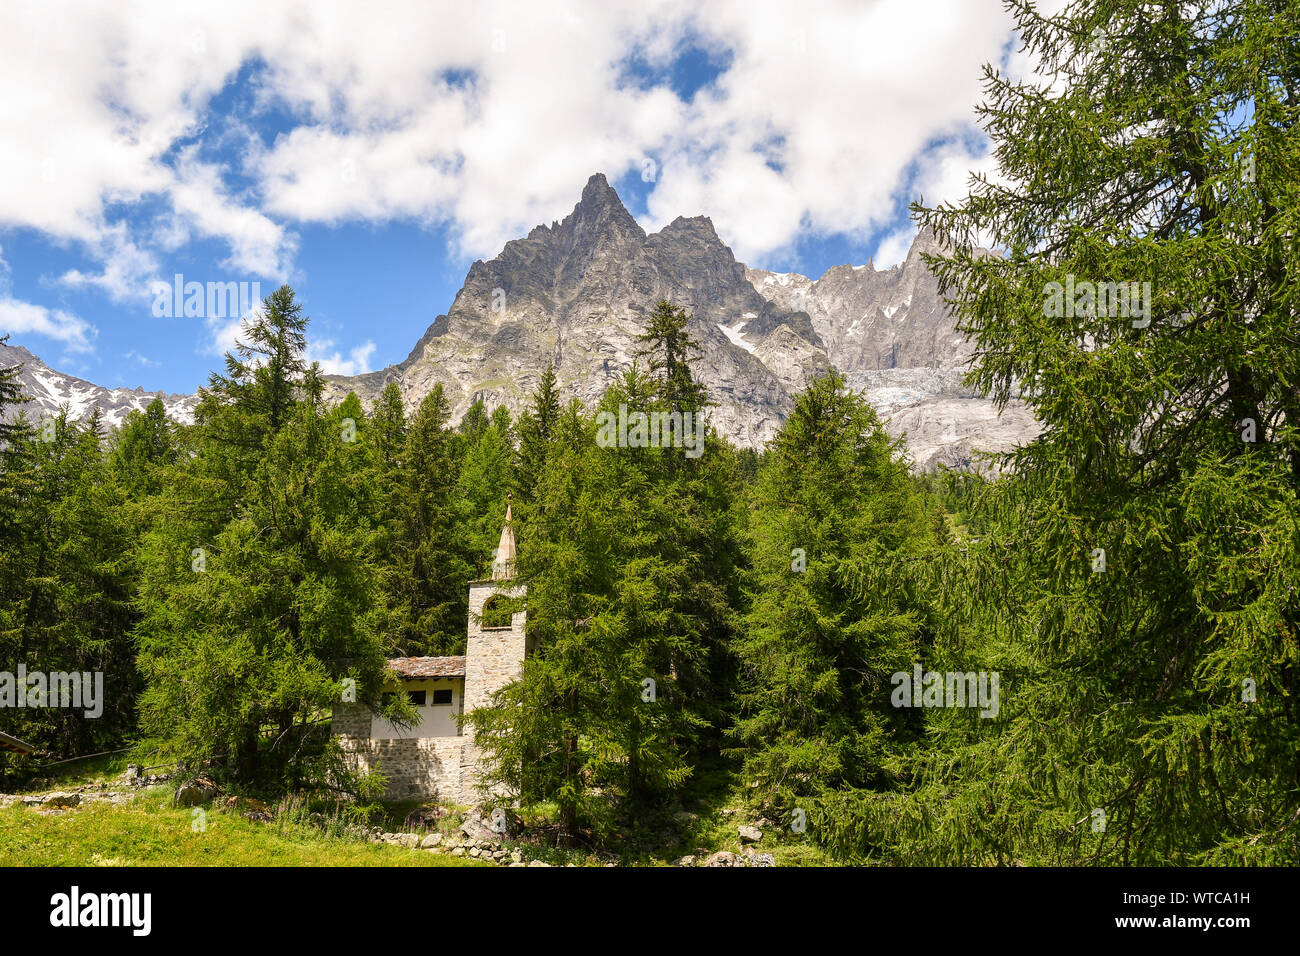 Alpine mountain landscape with a stone church in a pine forest at the foot of the Mont Blanc range in summer, Val Ferret, Courmayeur, Aosta, Italy Stock Photo